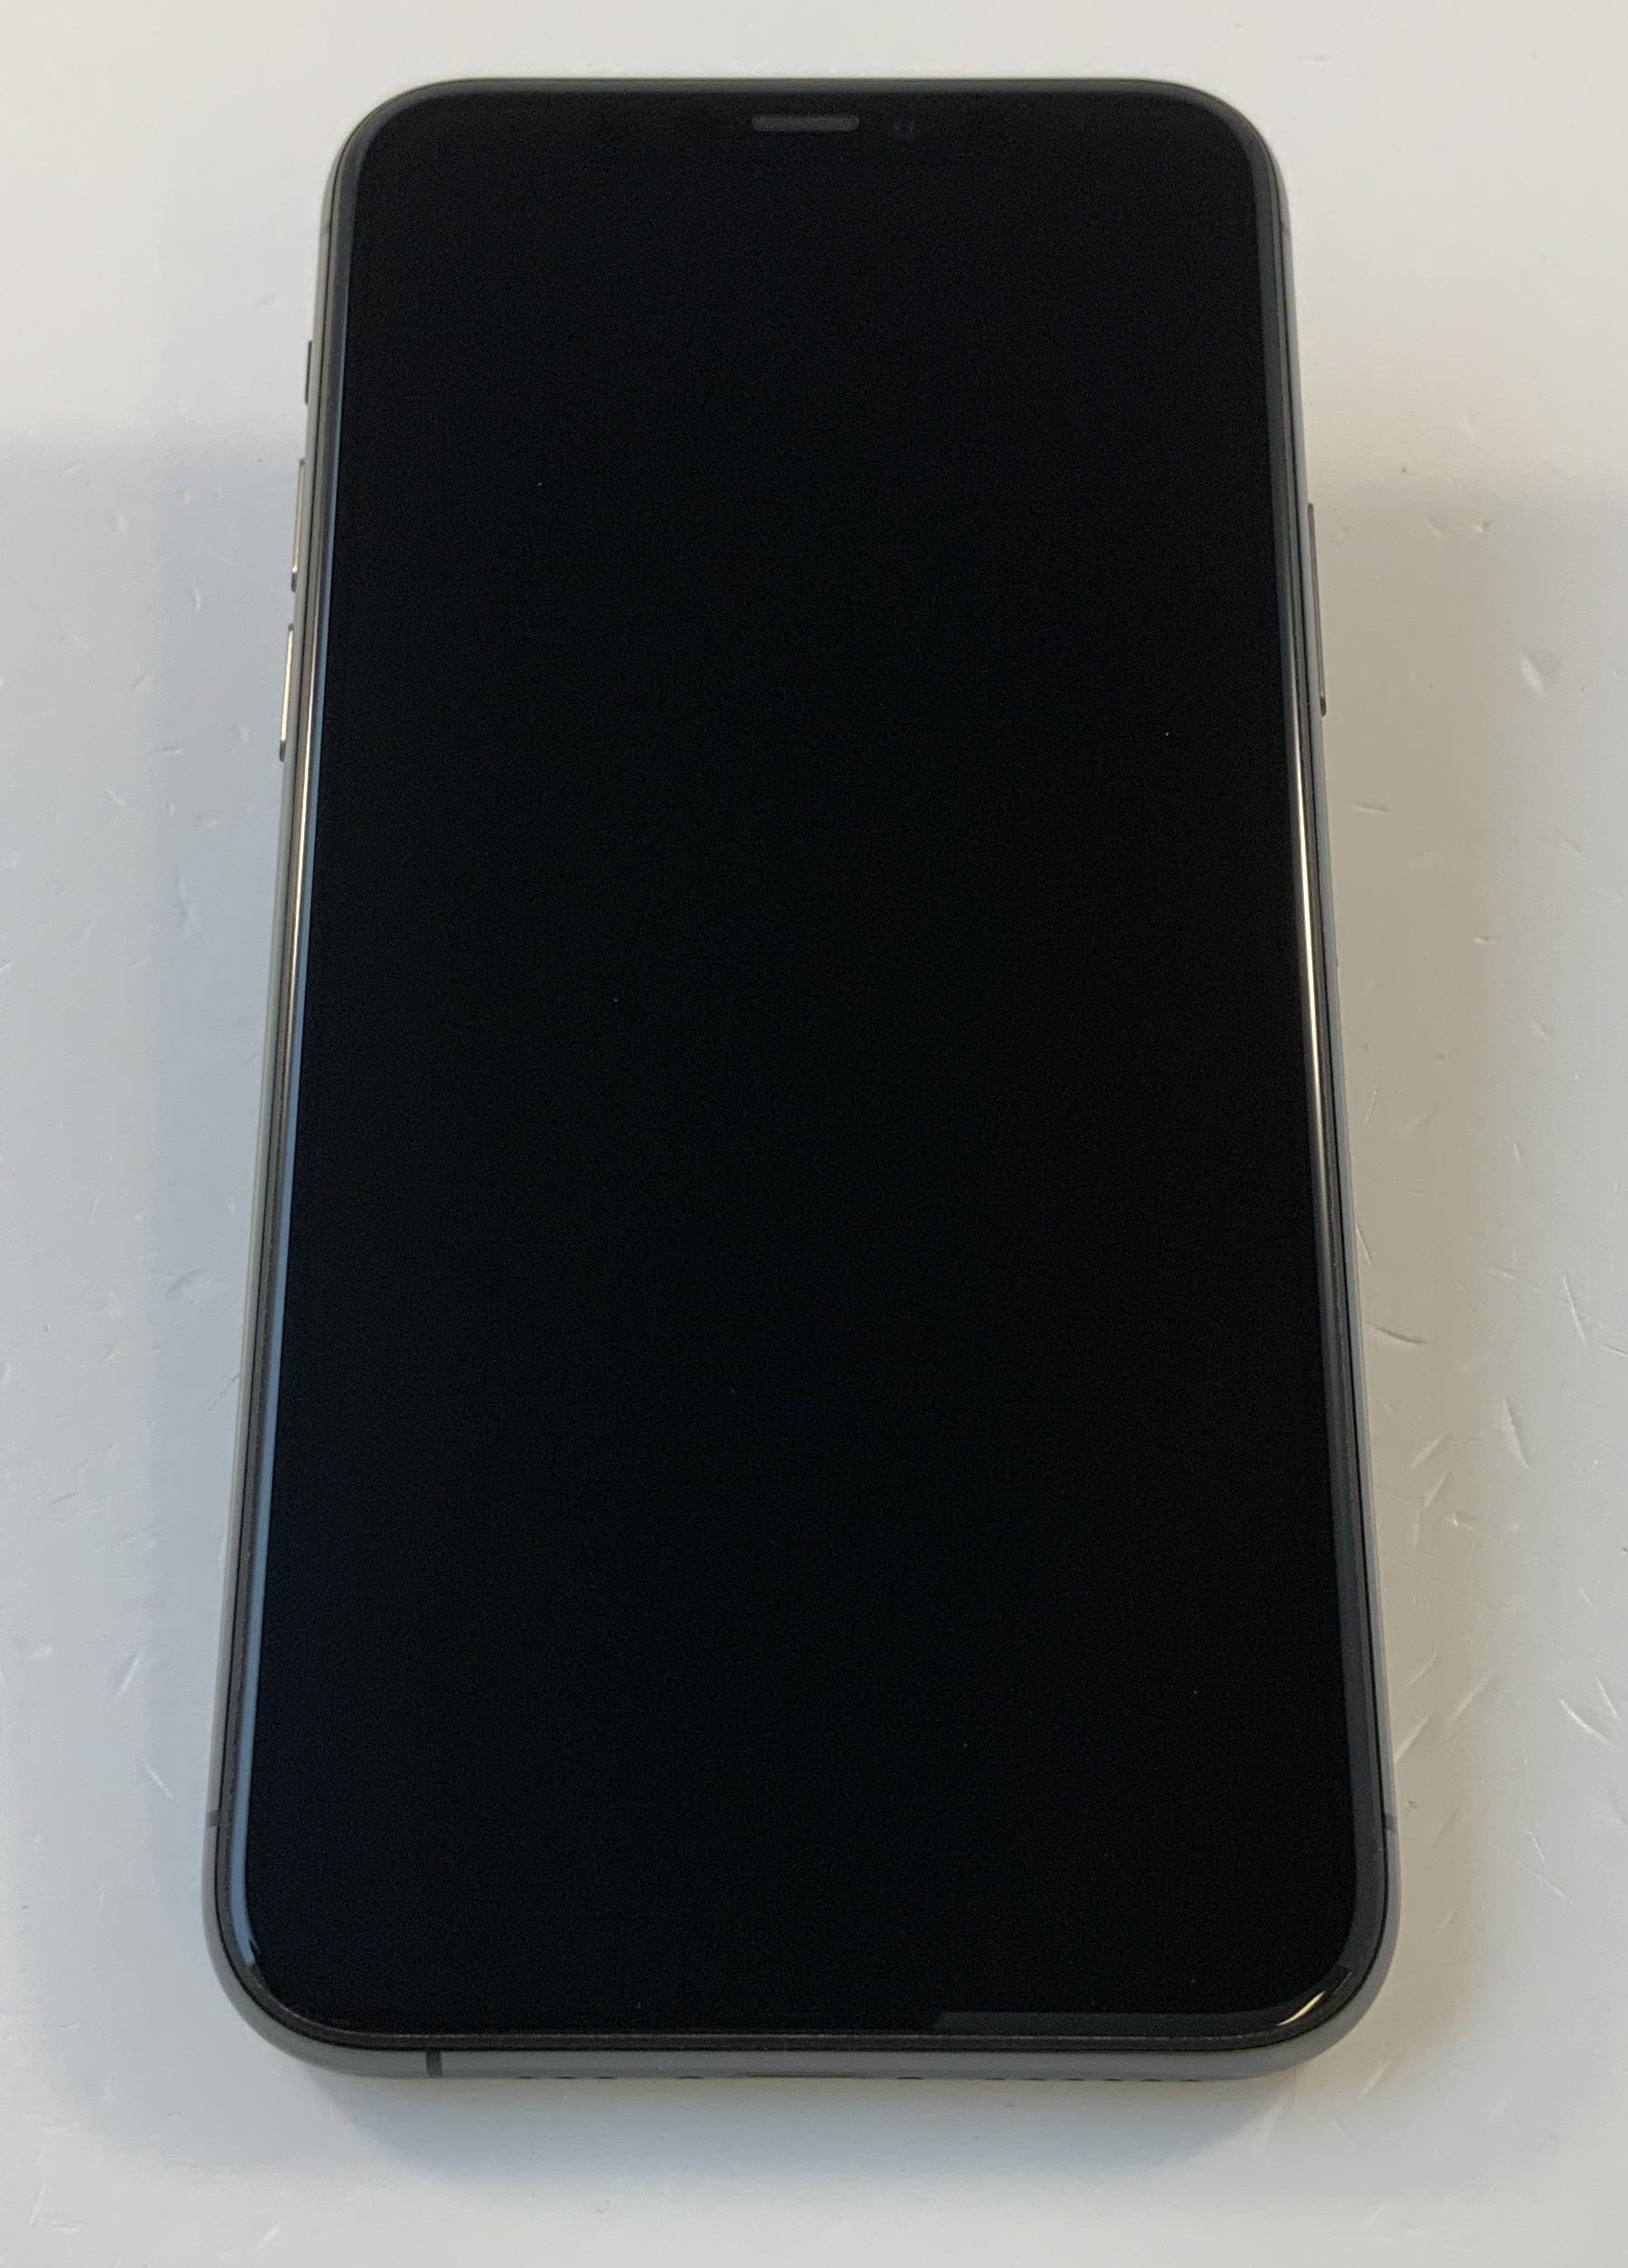 iPhone 11 Pro 64GB, 64GB, Space Gray, image 1